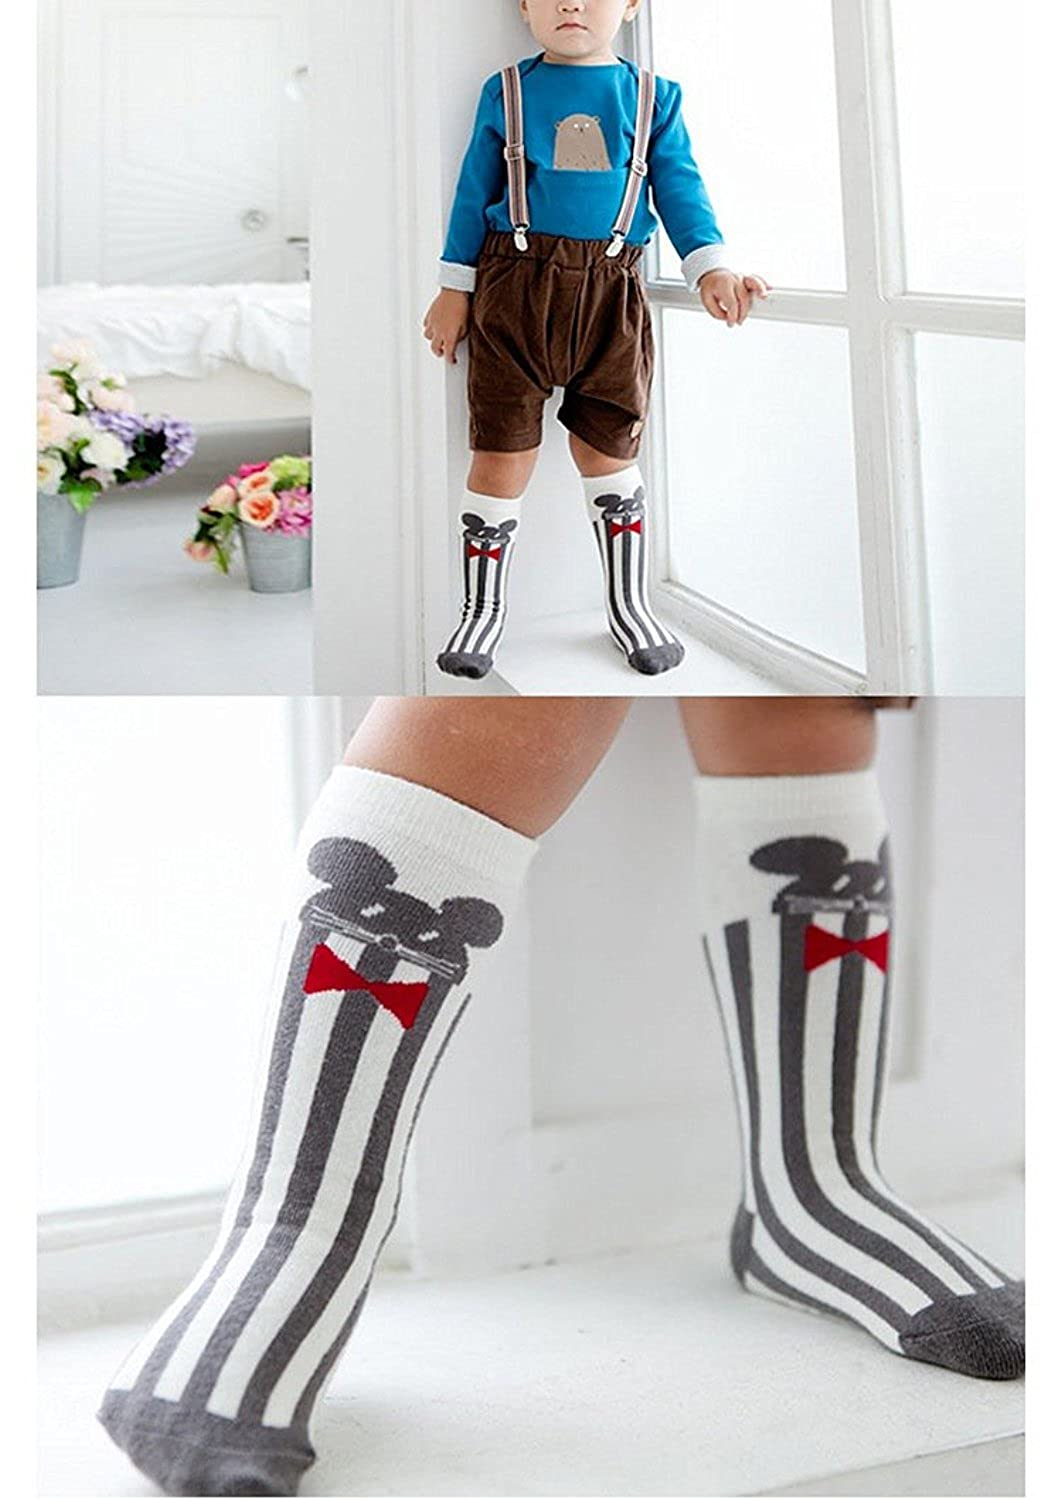 6 Pairs Non Skid Toddler Socks Baby Boy Girl socks with Grid Cotton Knee High Boot Socks